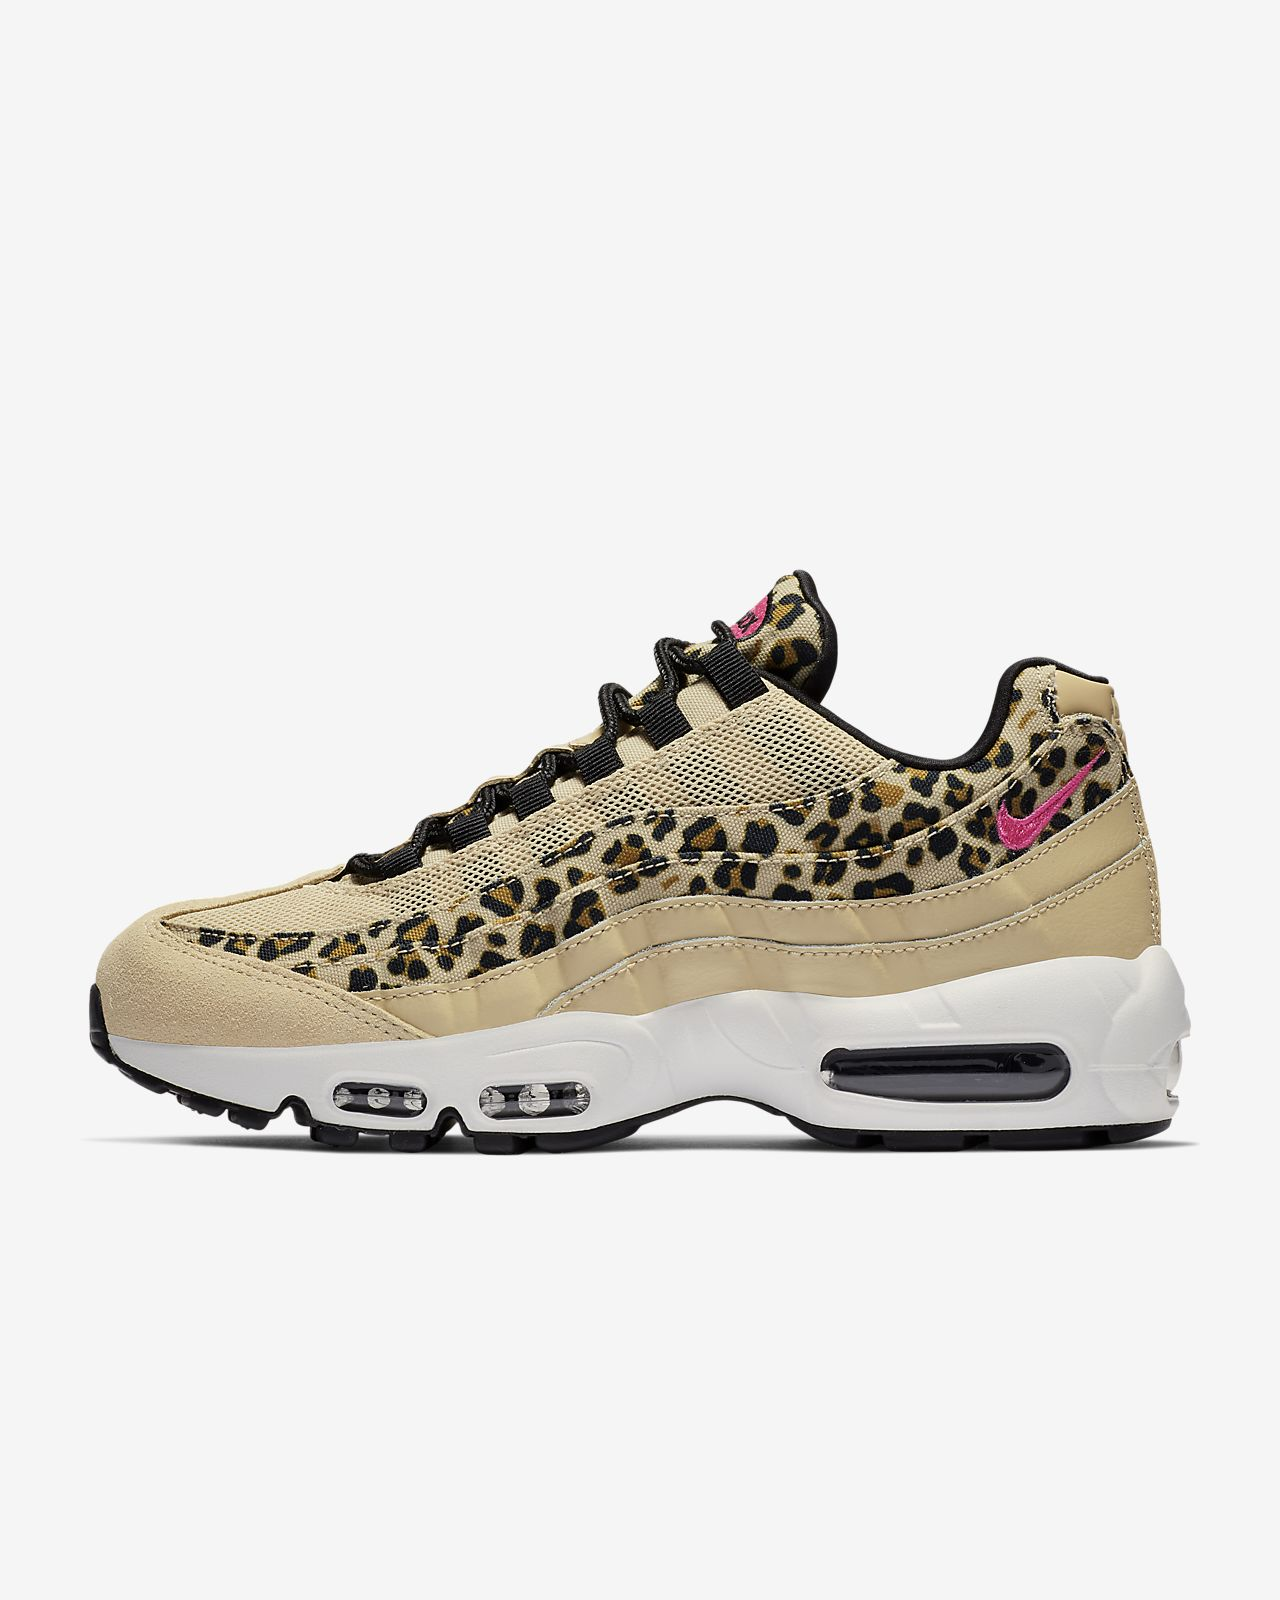 official photos 4db1d e2016 ... Chaussure Nike Air Max 95 Premium Animal pour Femme